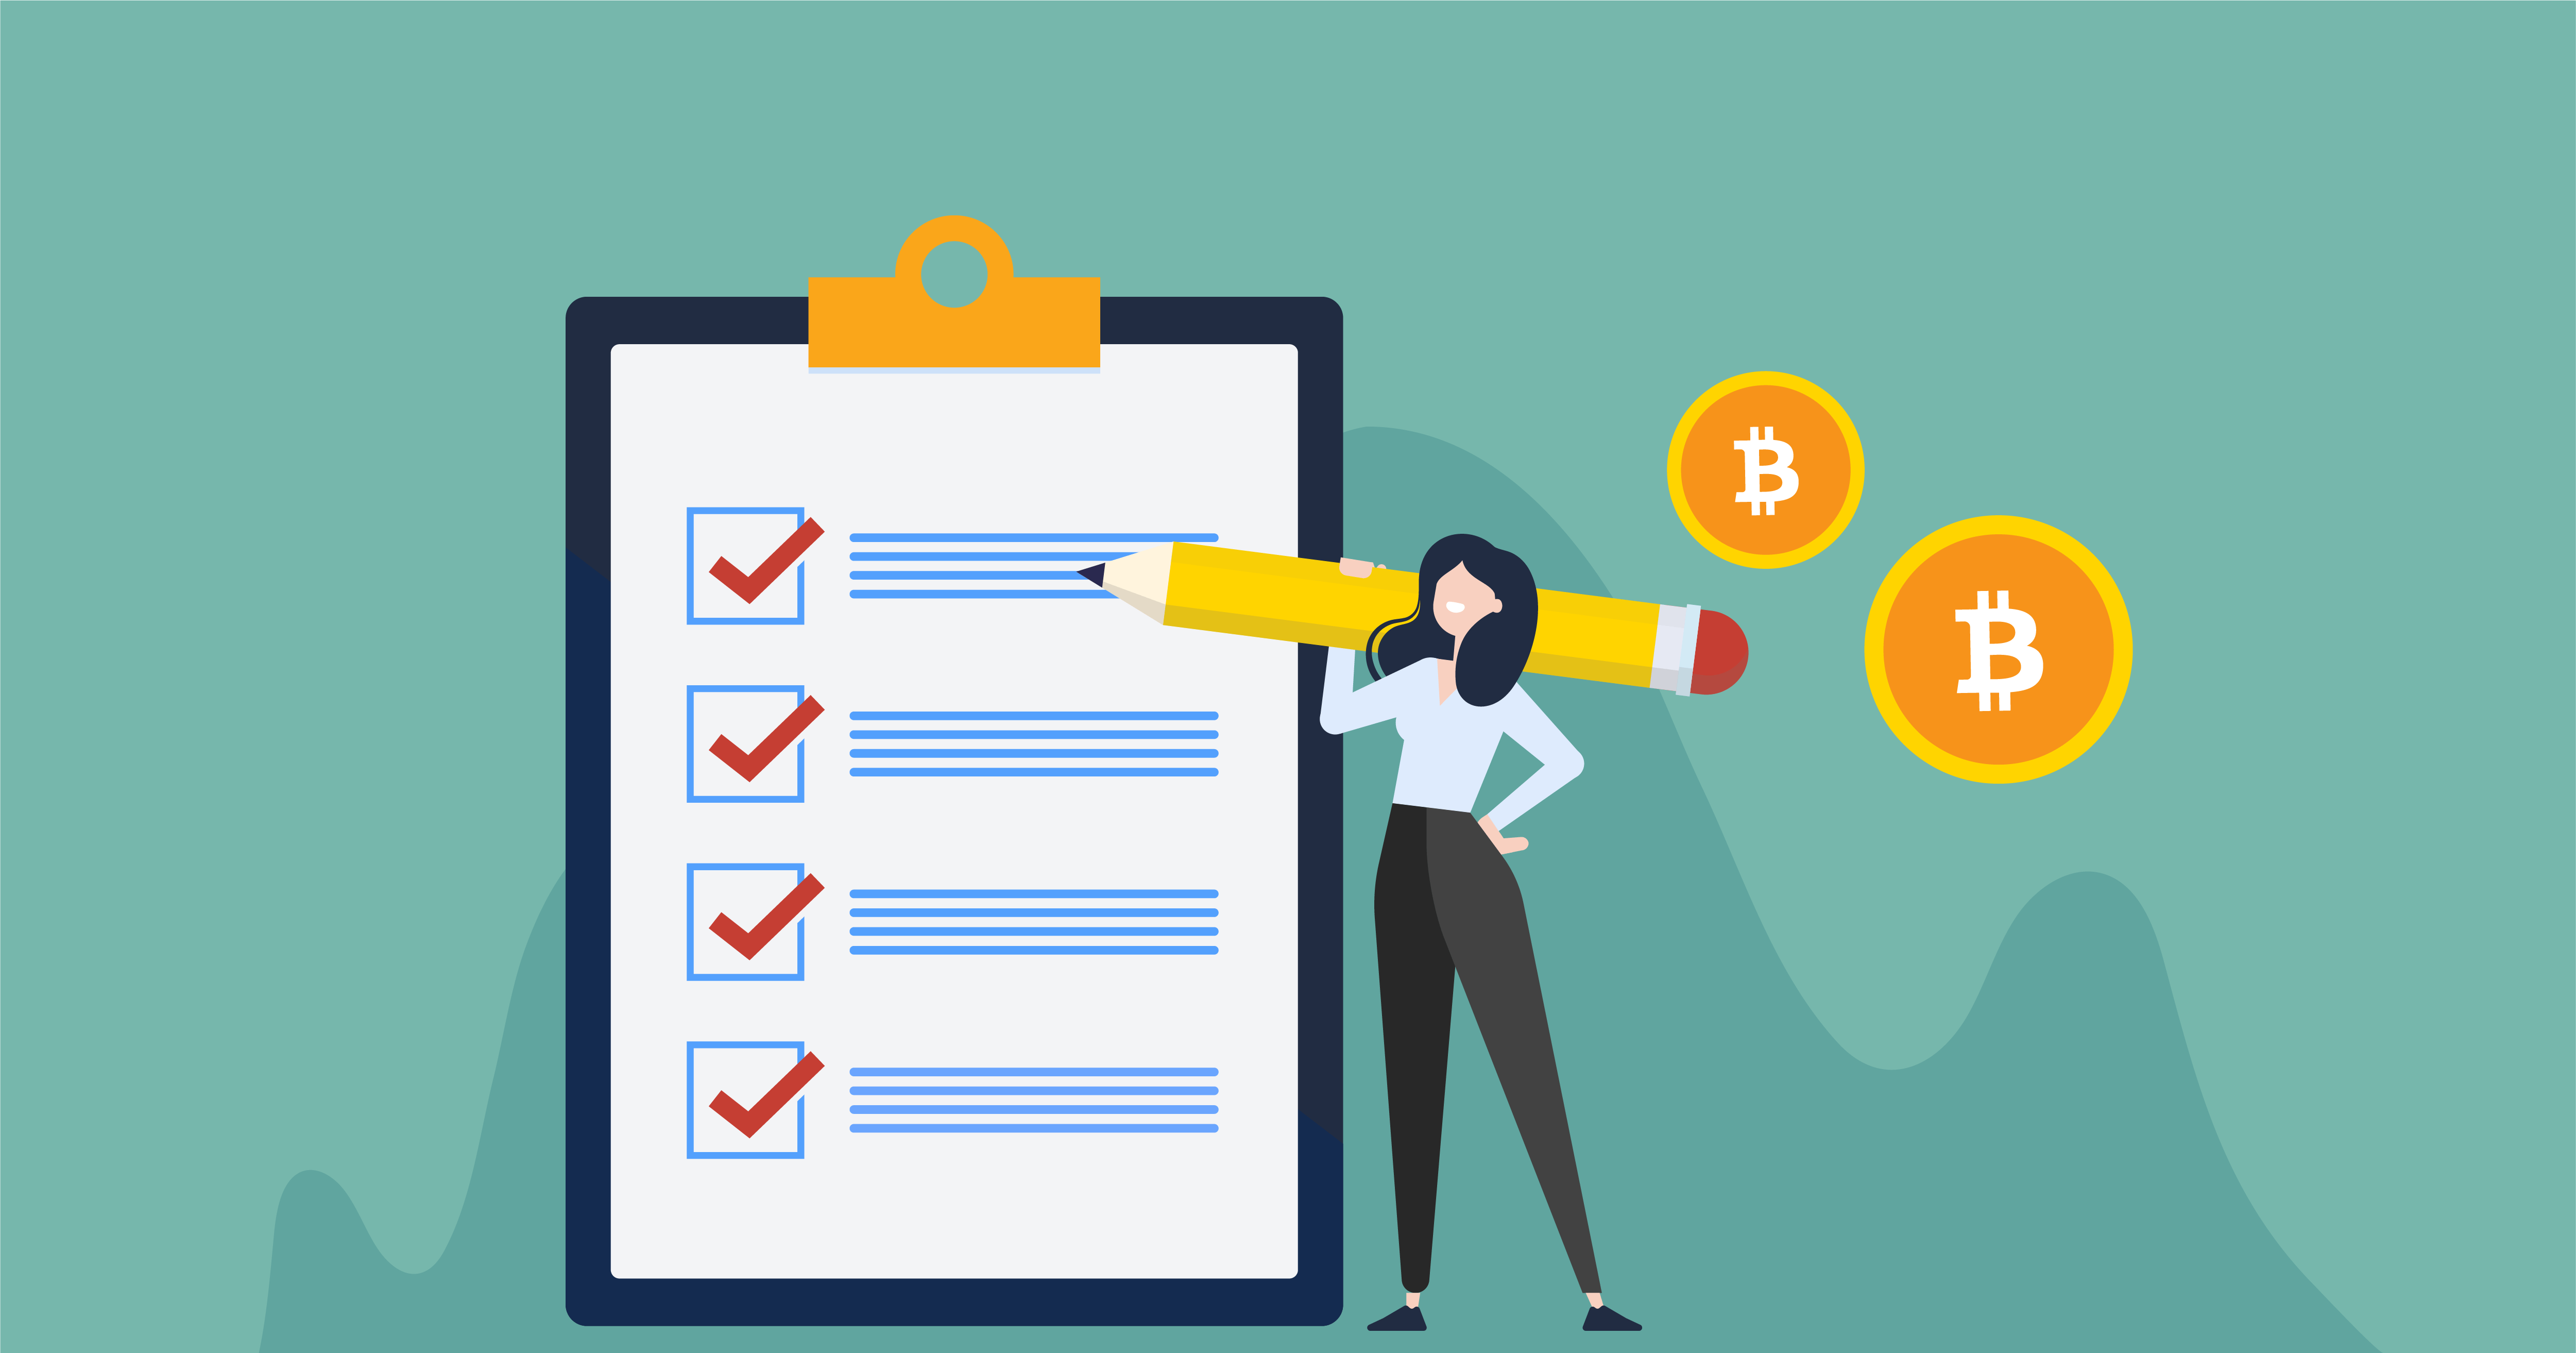 The Ultimate Crypto Tax Checklist - Everything You Need to Properly File Your Cryptocurrency Taxes